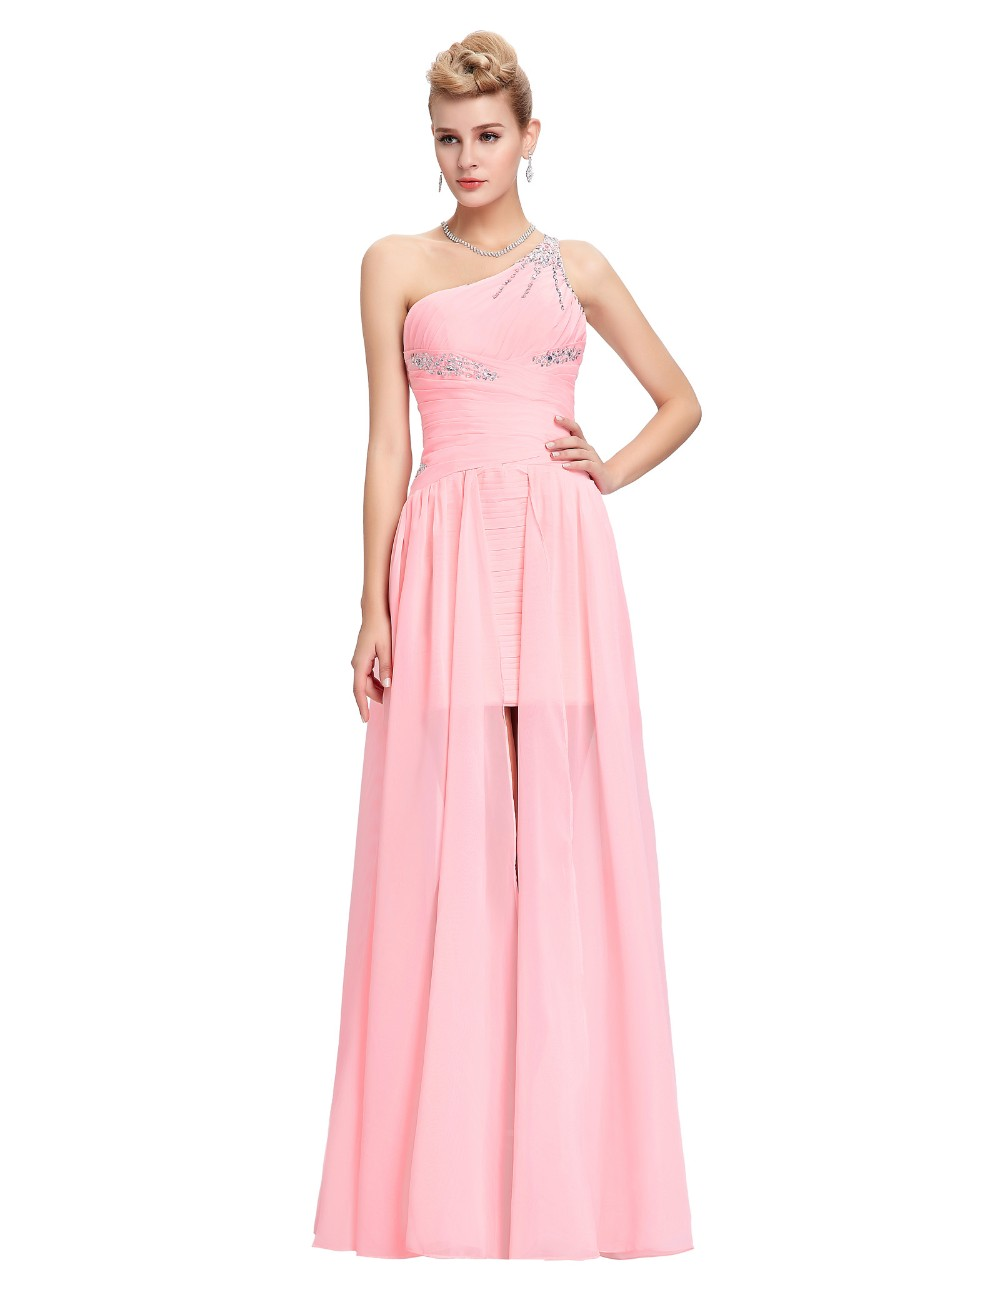 Light Pink Bridesmaid Dresses Grace Karin Beaded Chiffon One Shoulder Formal Gowns Short Front Long Back Wedding Party Dresses 8